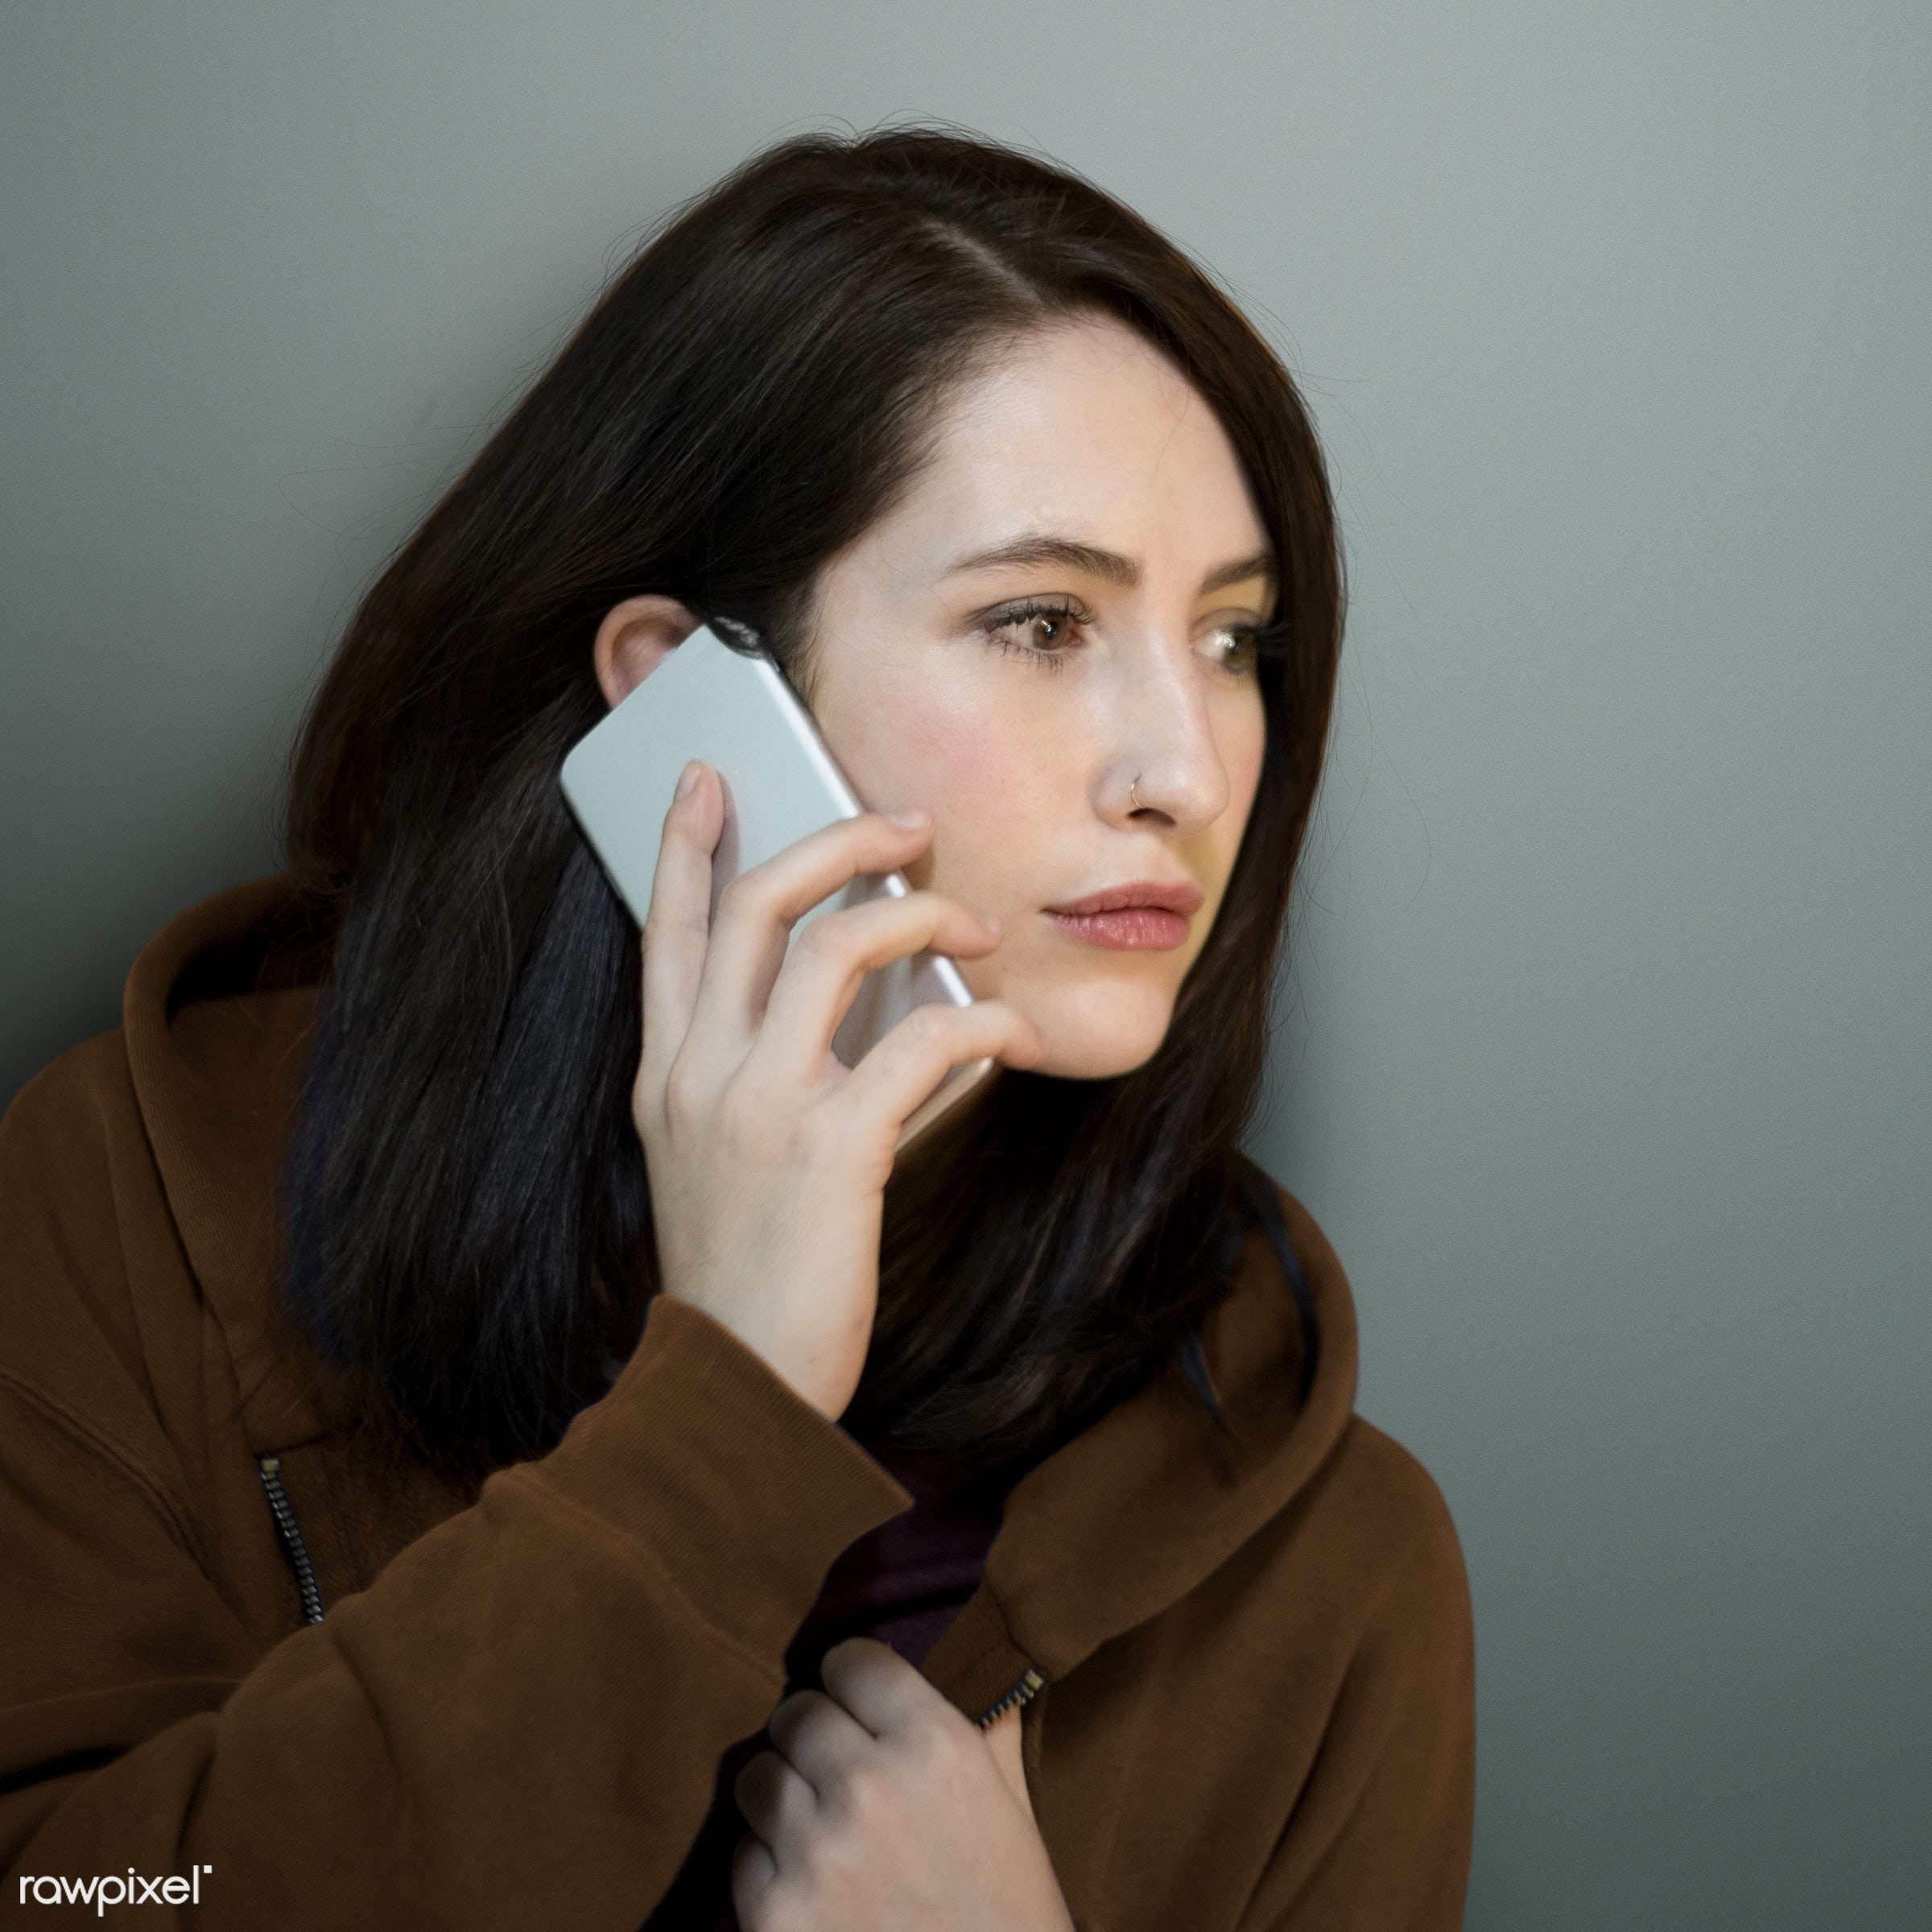 holding, mobility, alone, brunette, call, calling, casual, communication, connection, conversation, device, digital,...